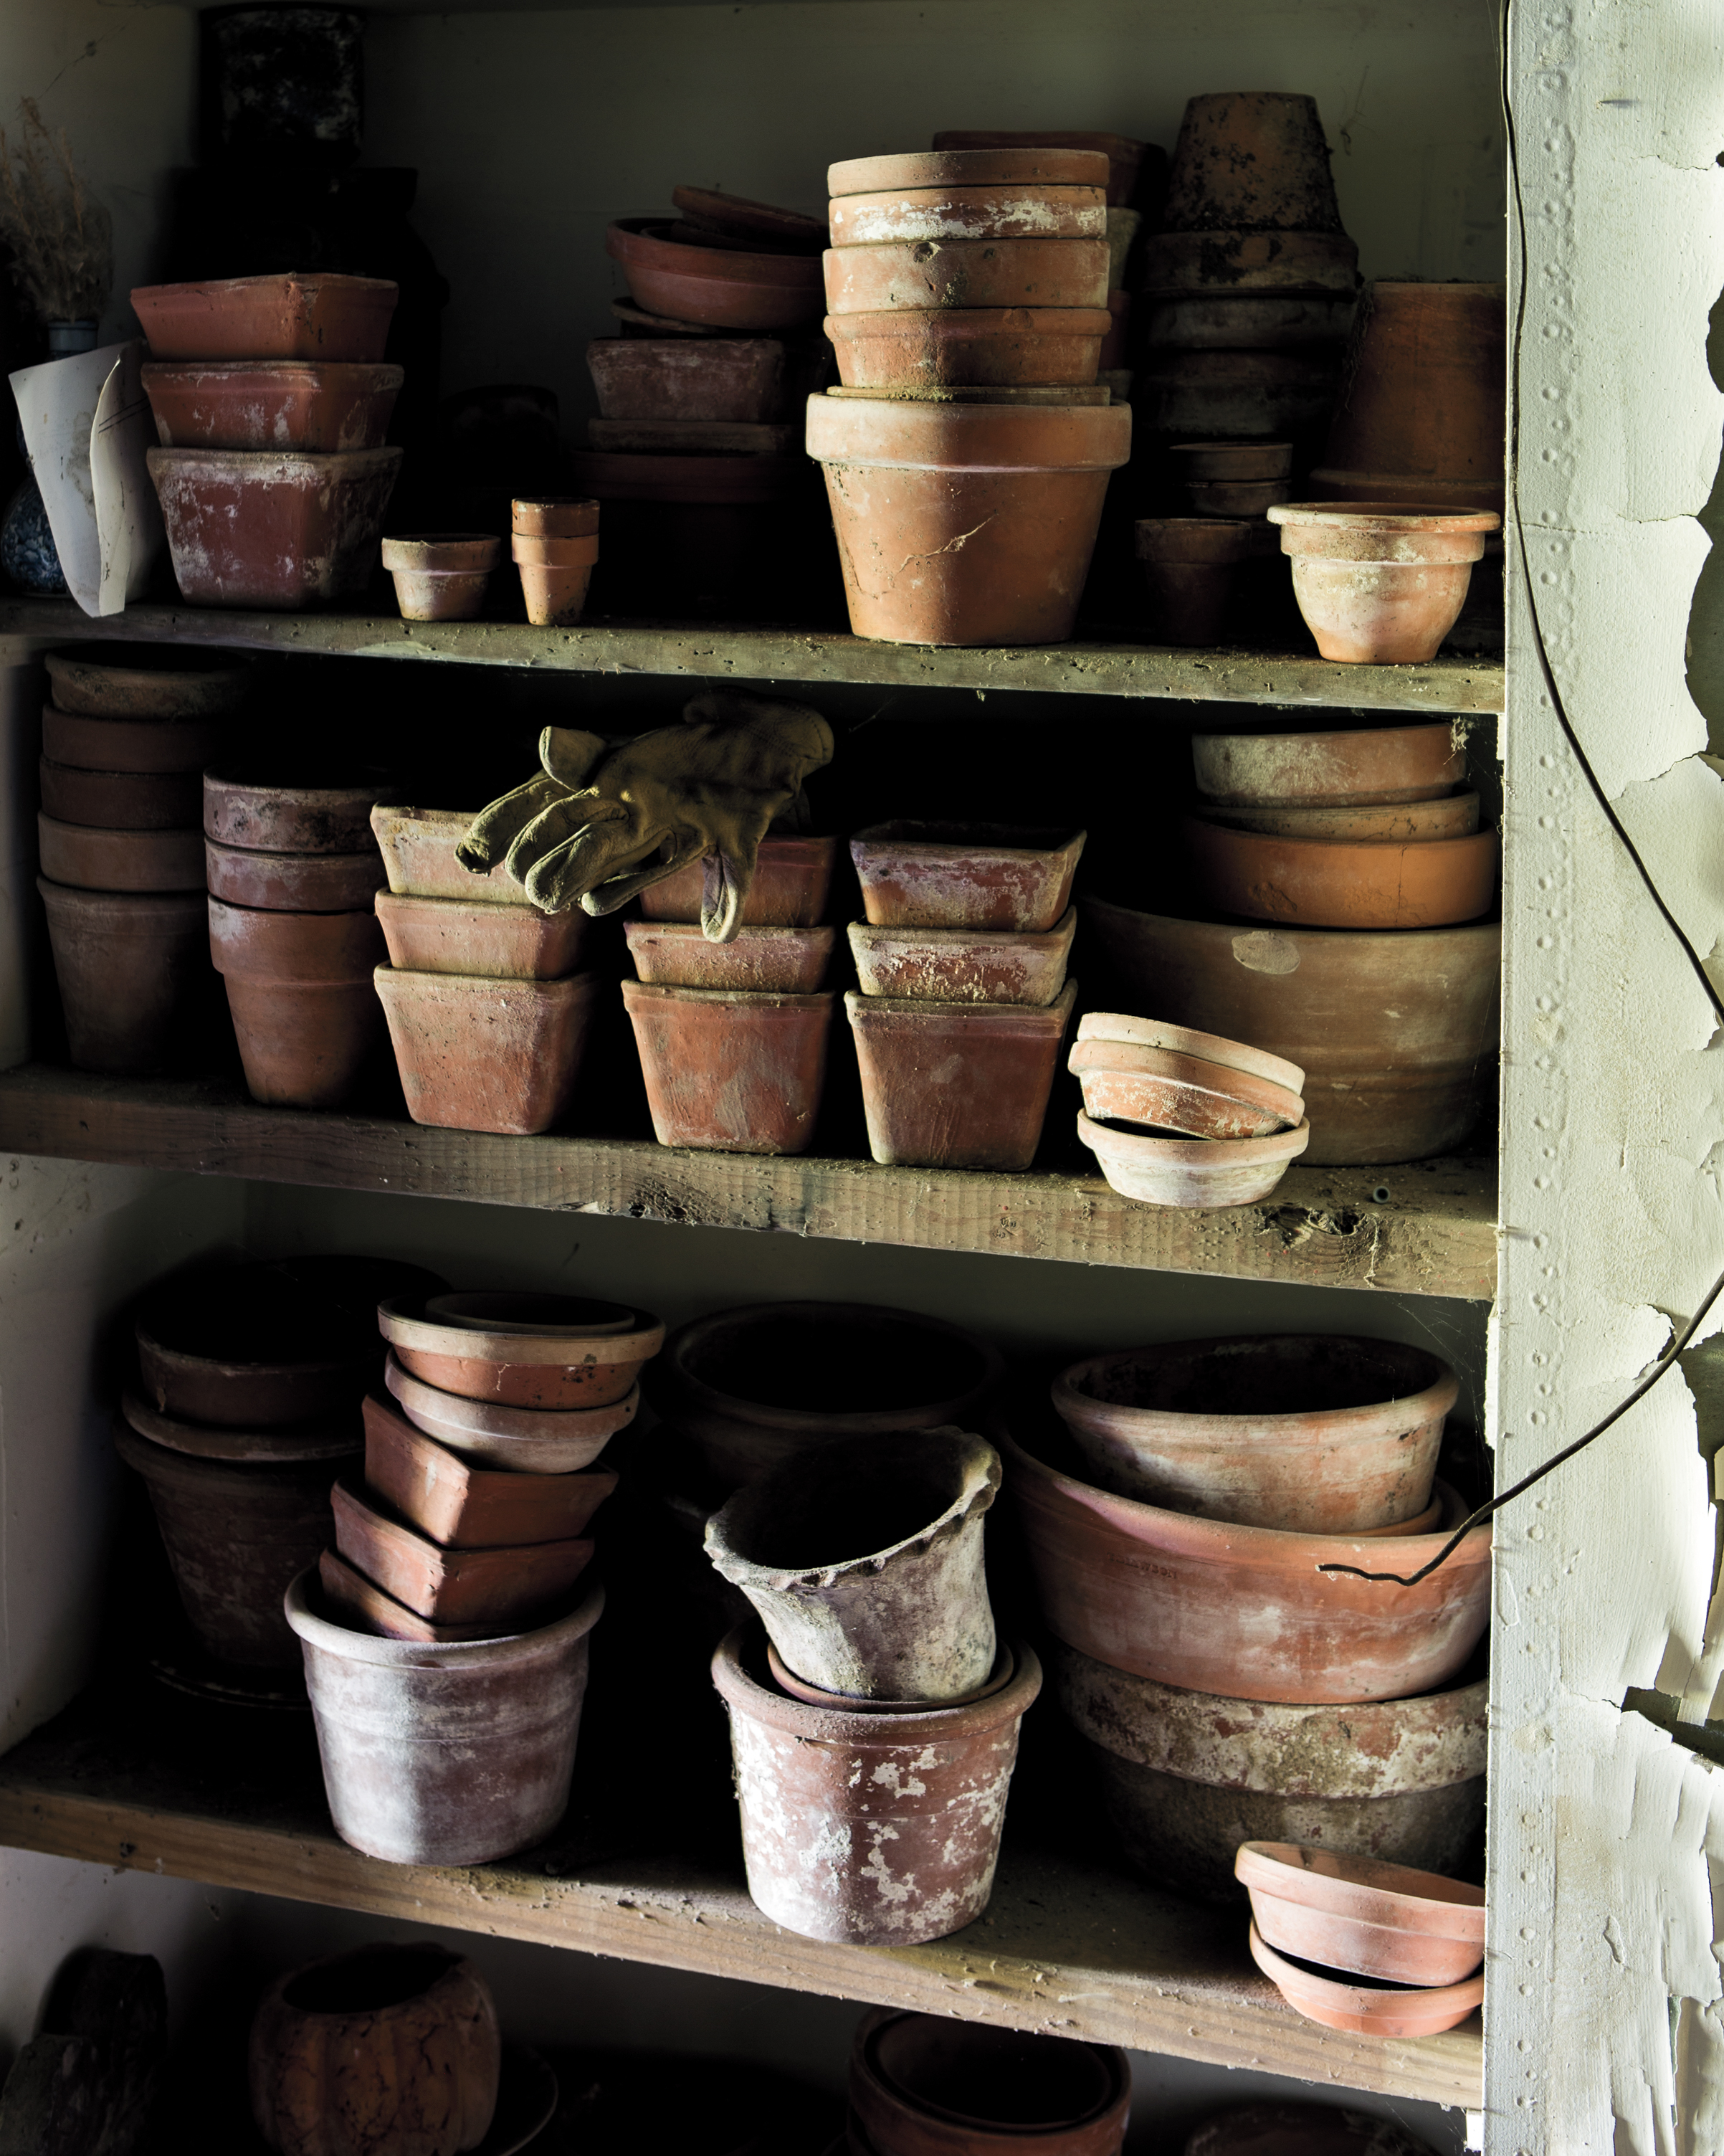 Terra-Cotta-Pots-Hollister-House-8857-Edit-MD109020.jpg